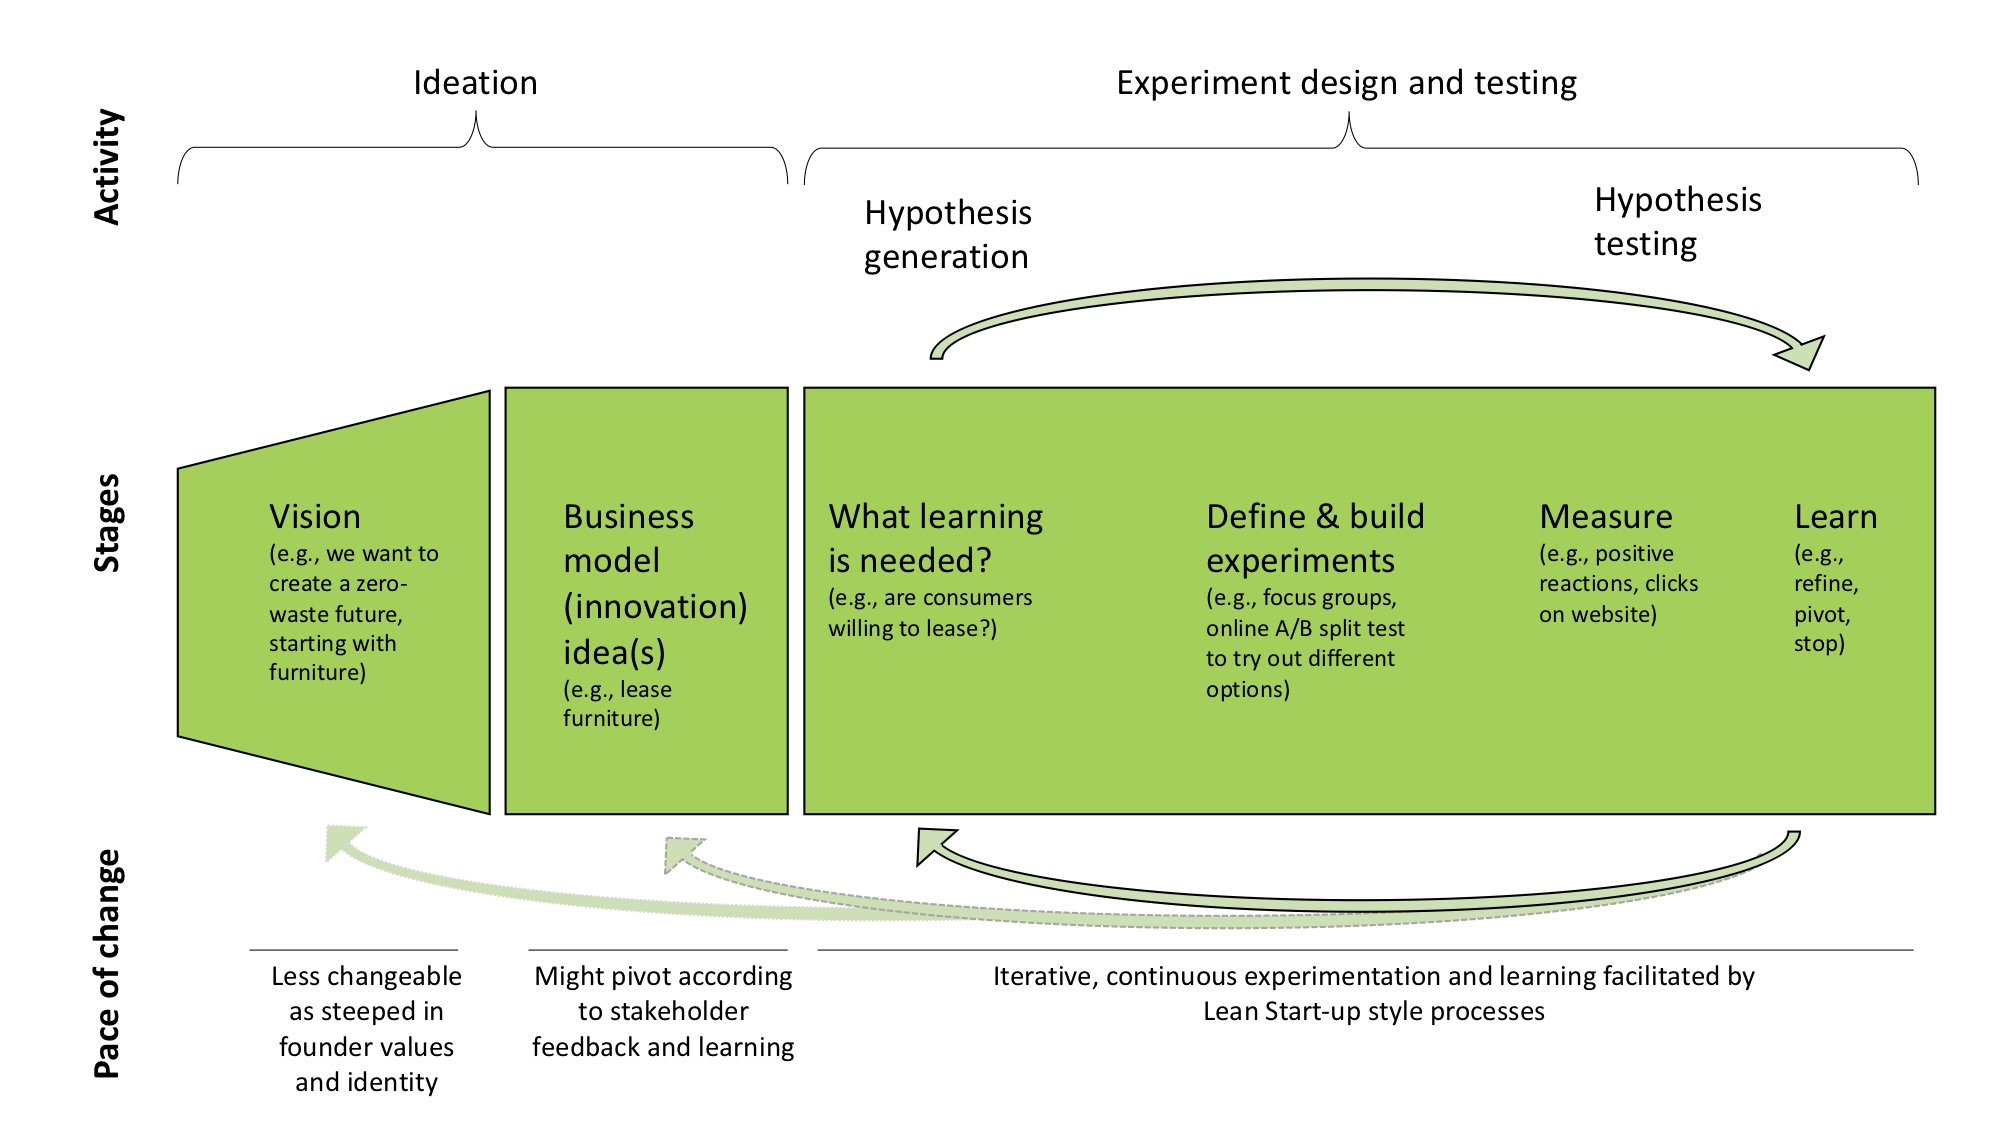 Lean startup experimentation